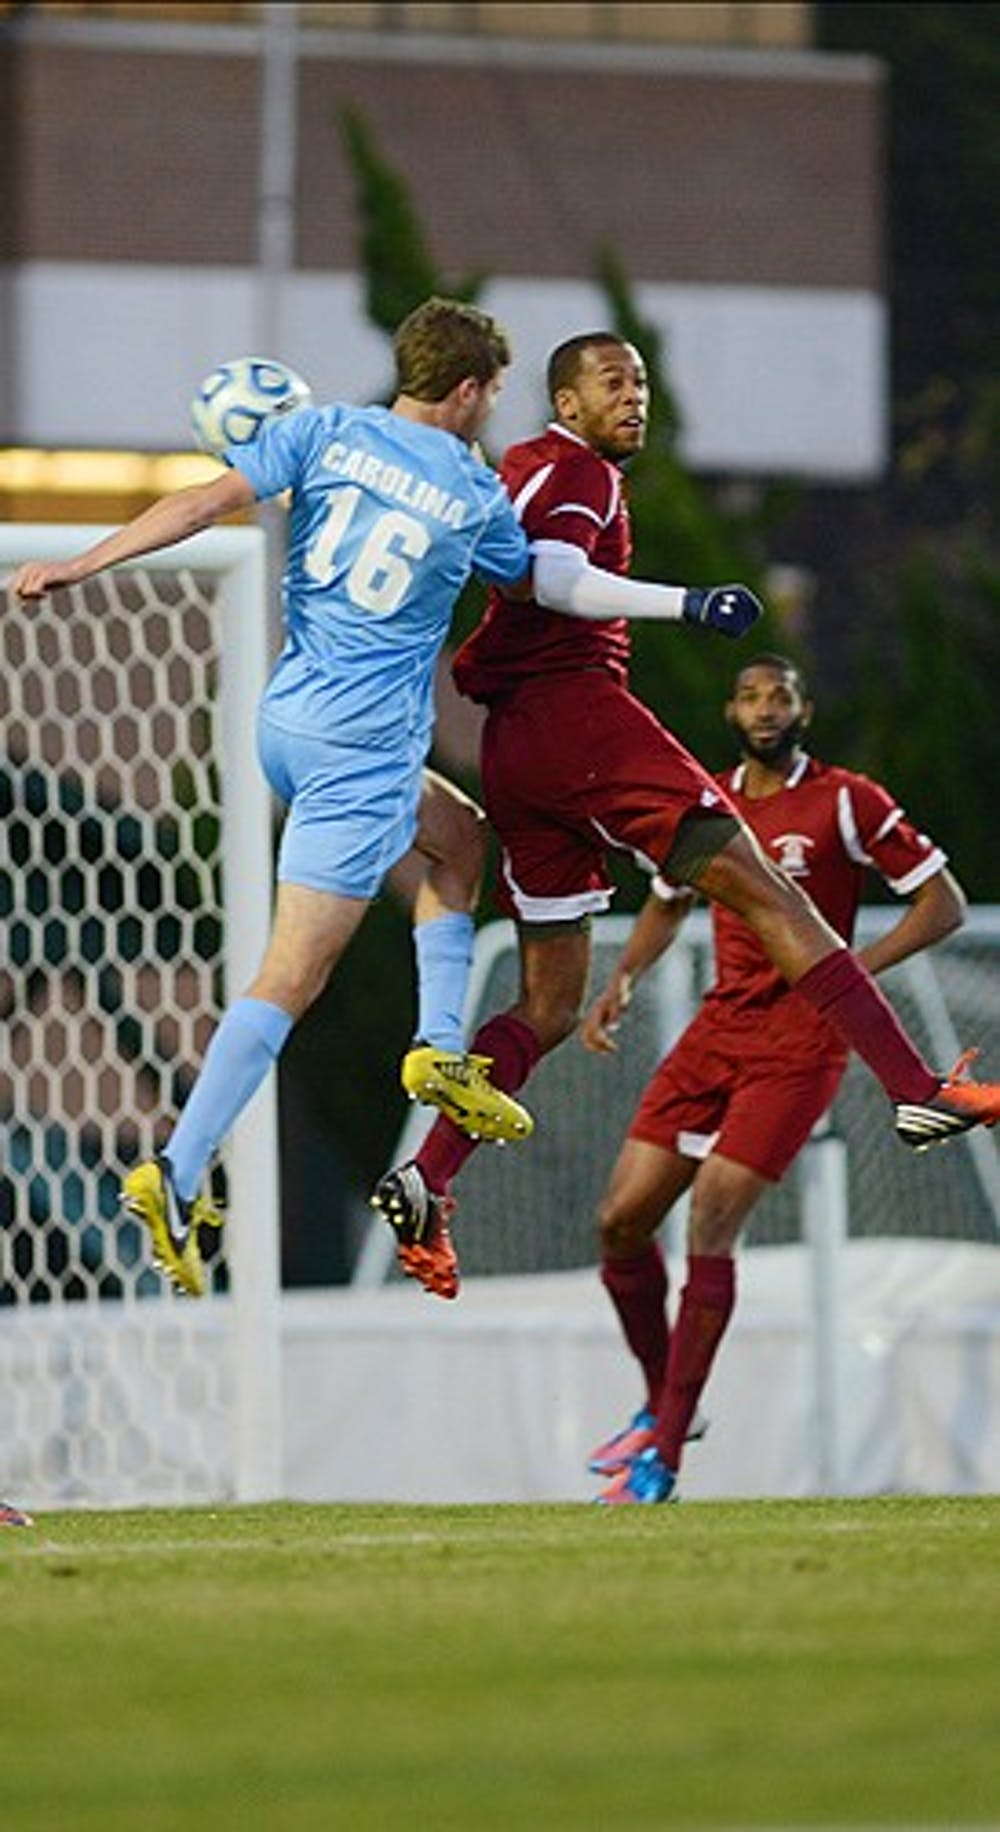 <p>Rob Lovejoy, who assisted on the game-winning goal, skies for a header against Fairleigh Dickinson Sunday night. </p>